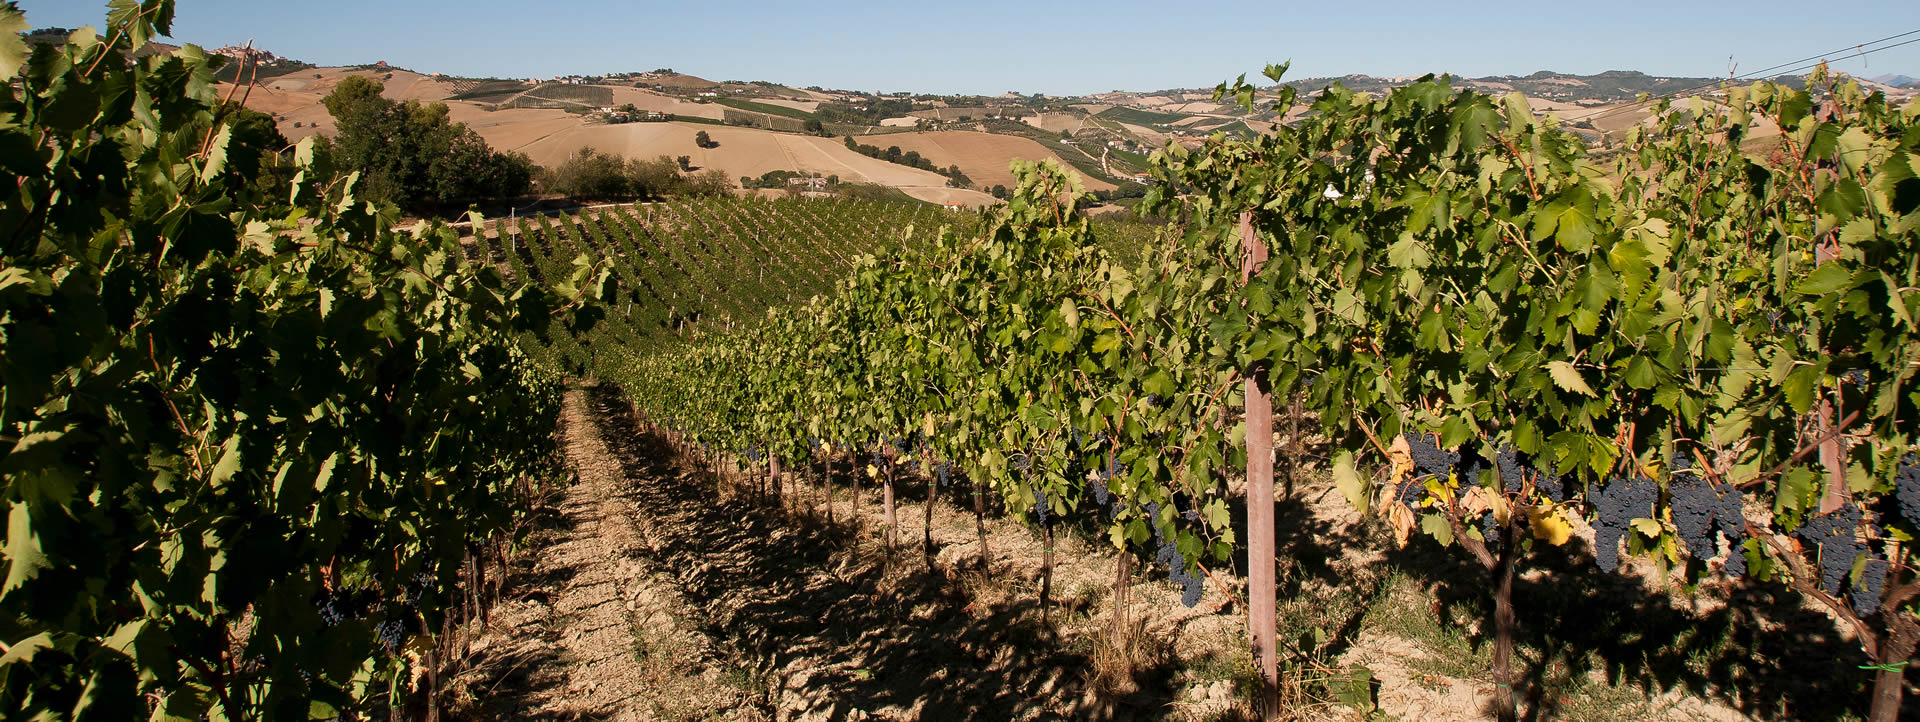 Looking into the vineyards in the Offida Rosso DOC region of Marche